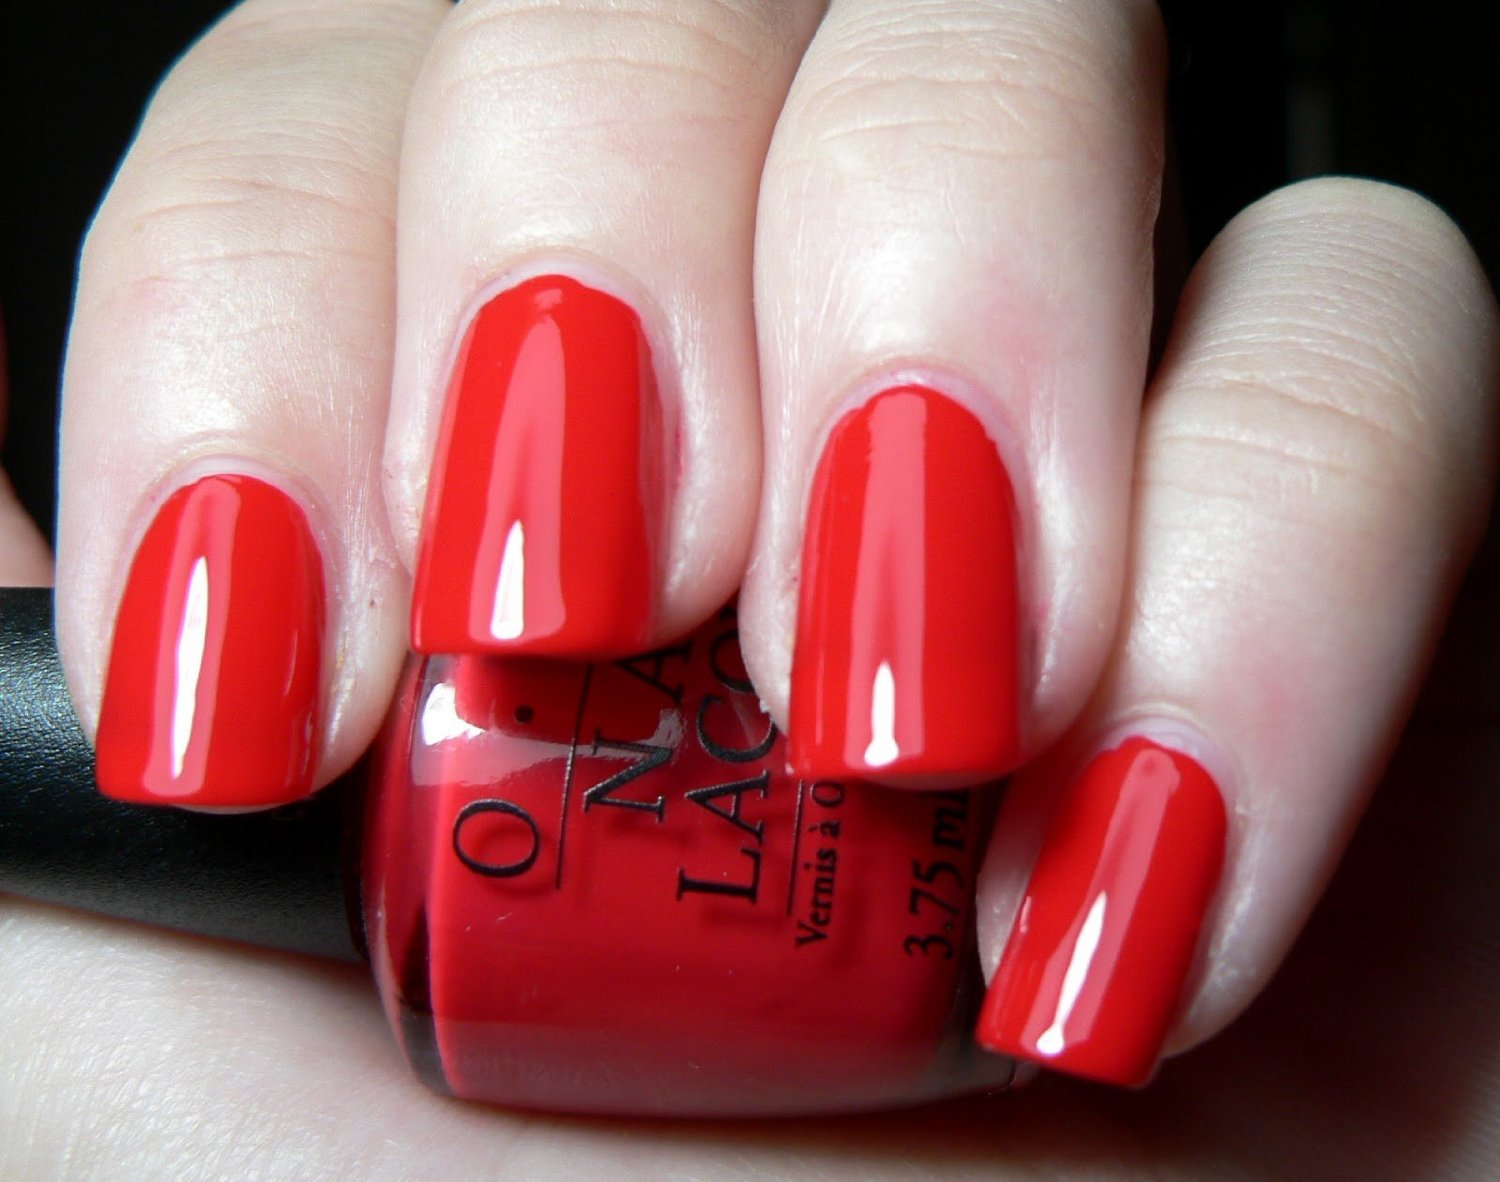 OPI Daytona Red